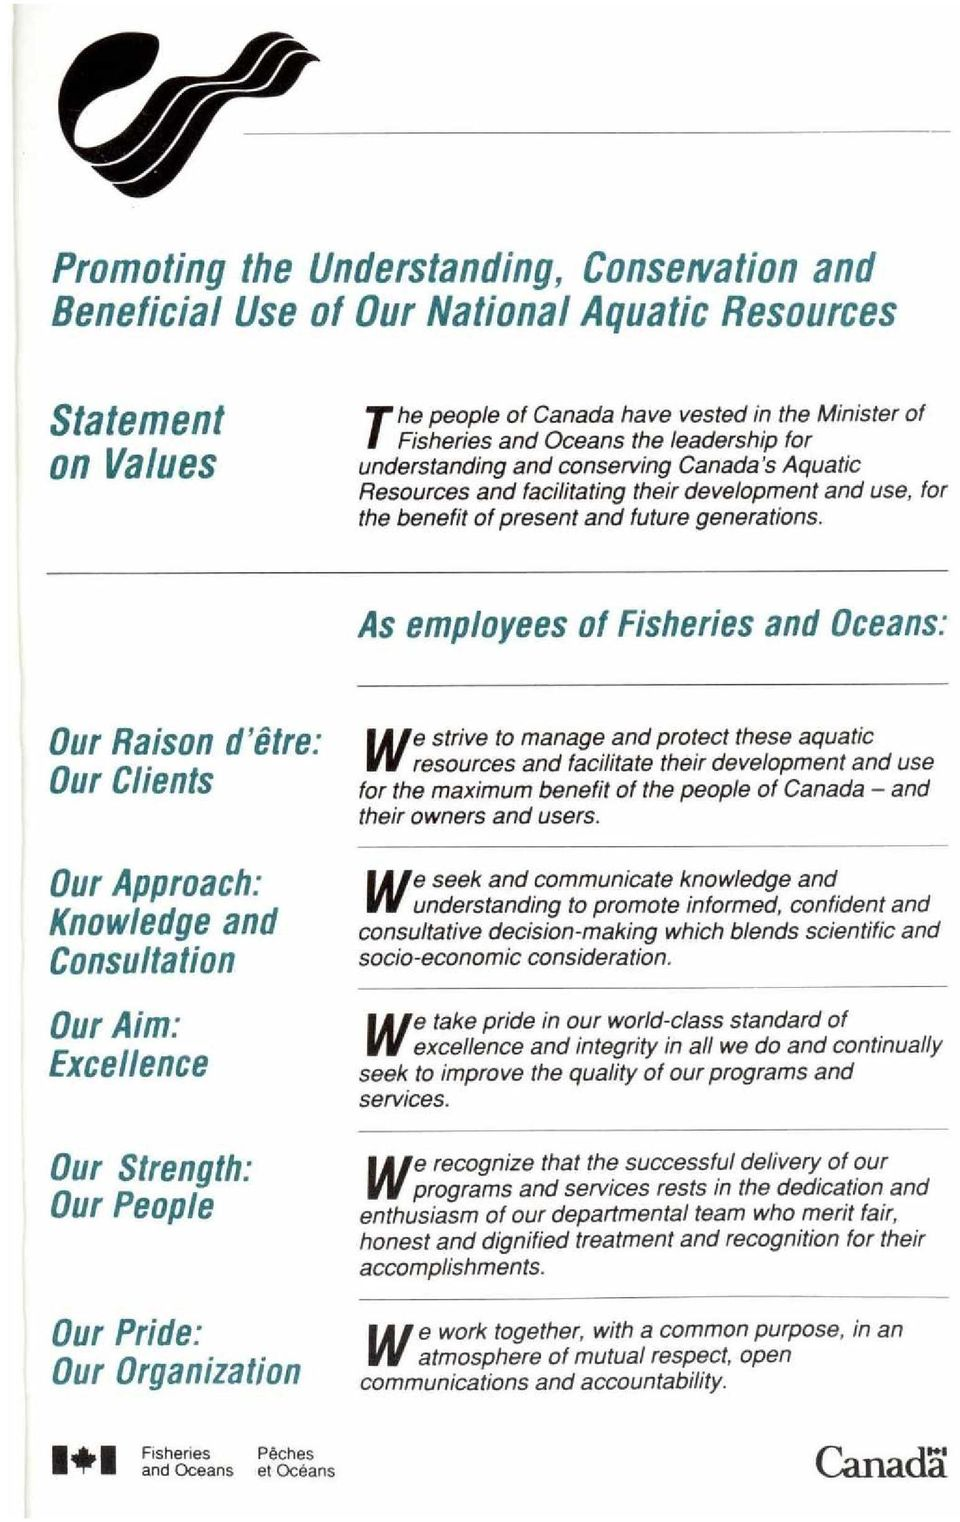 As employees of Fisheries and Oceans: Our Raison d'être: Our Clients Our Approach: Knowledge and Consultation Our Aim: Excellence Our Strength: Our People Our Pride: Our Organization We strive to